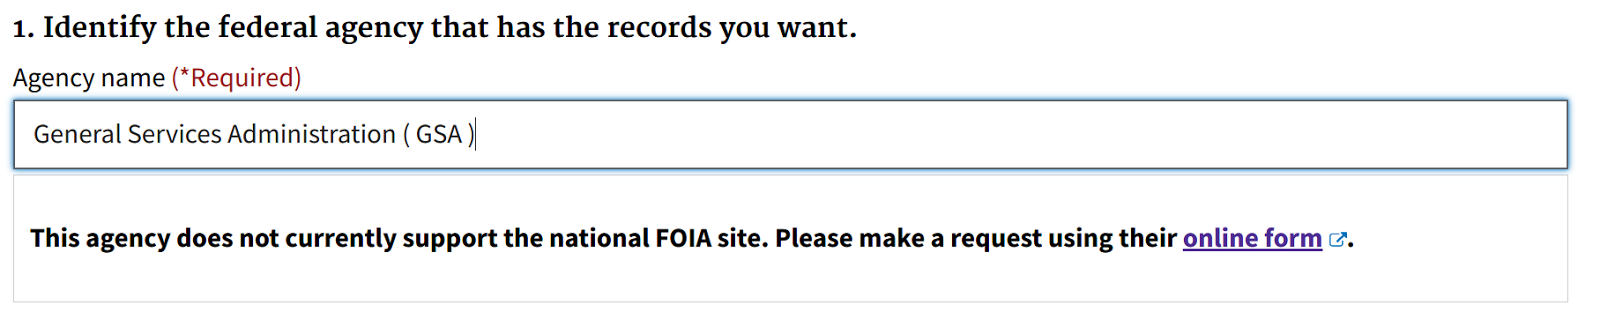 Screenshot of the prototype testing a direct link for submission to an agency with their own web form for request submission